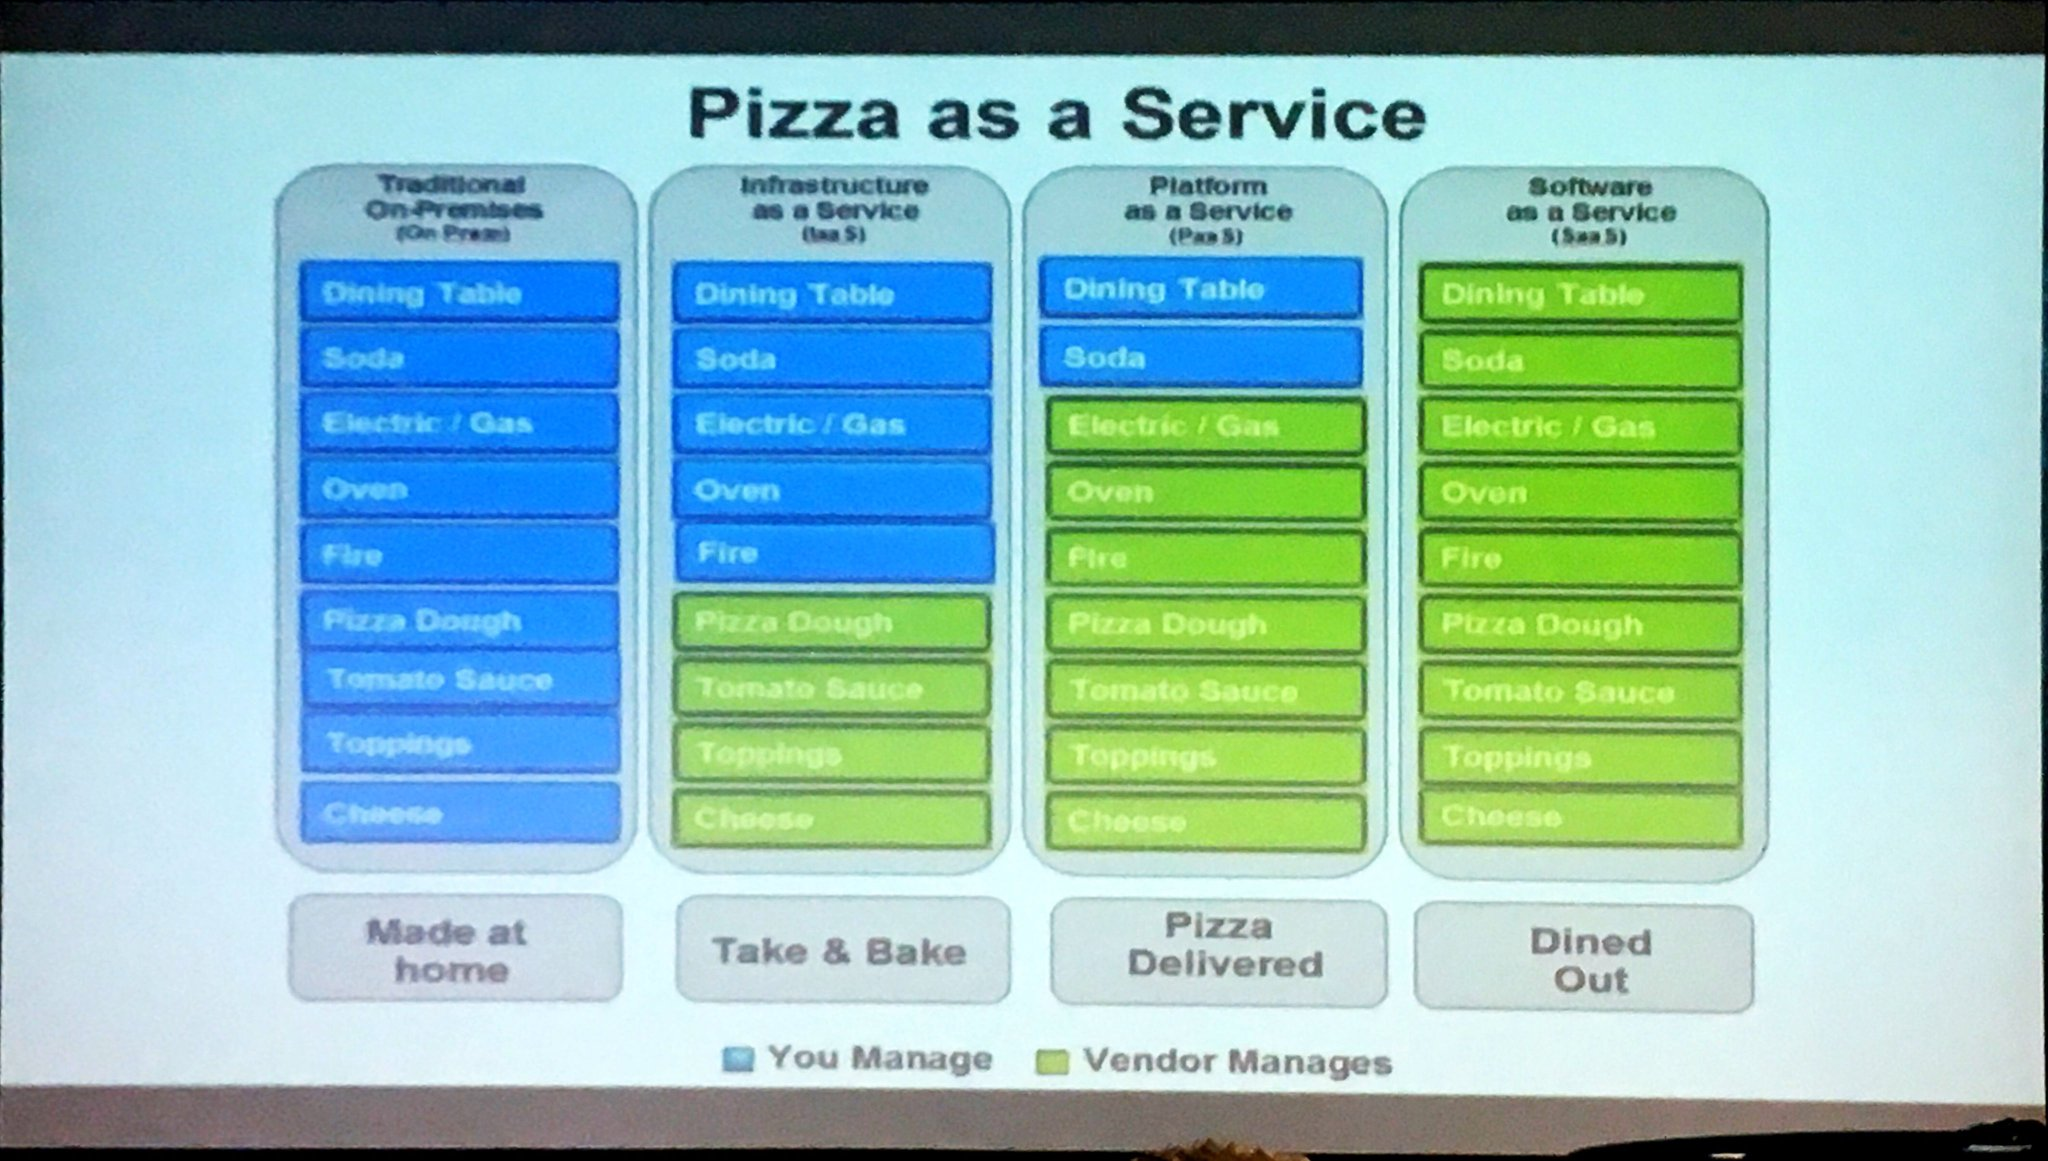 Pizza as a Service 🍕  #aisit17 https://t.co/1HMQVpan2C